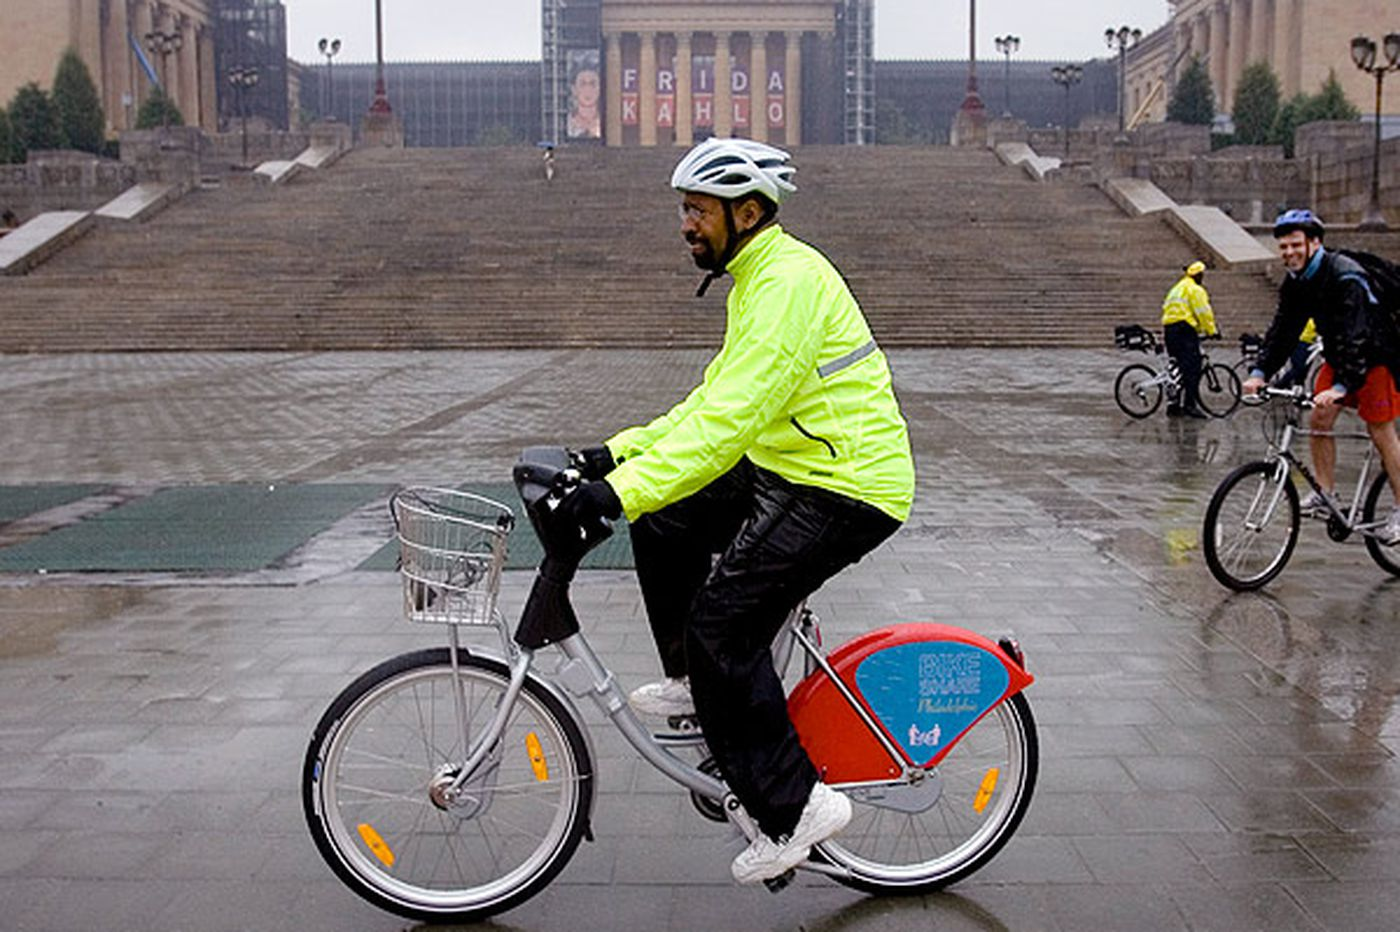 Bike share program coming to Philadelphia